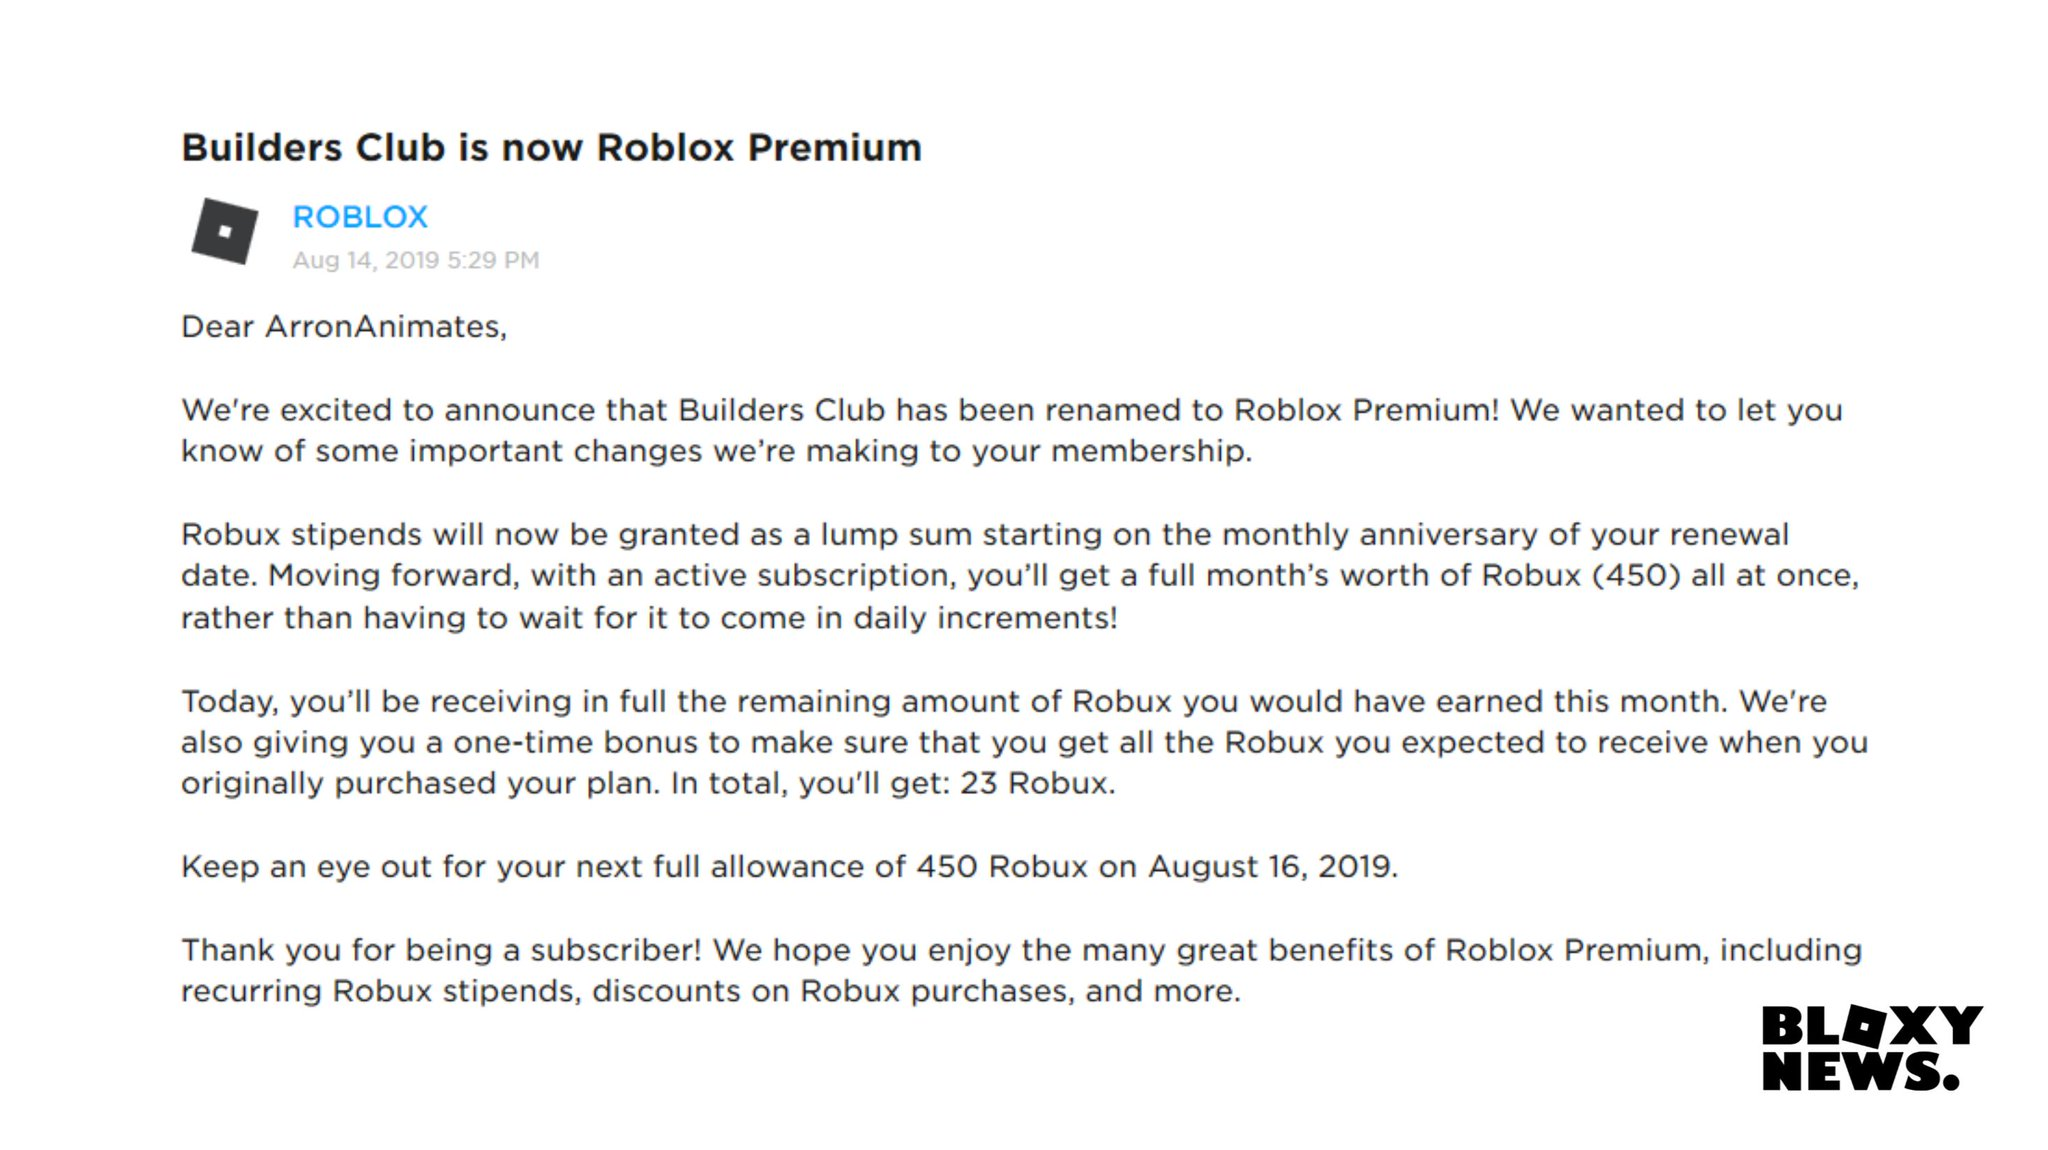 Bloxy News On Twitter Bloxynews Here Is What The Roblox Premium Page Will Look Like The Second Picture Is The Message You Will Receive When Builders Club Officially Changes To Premium